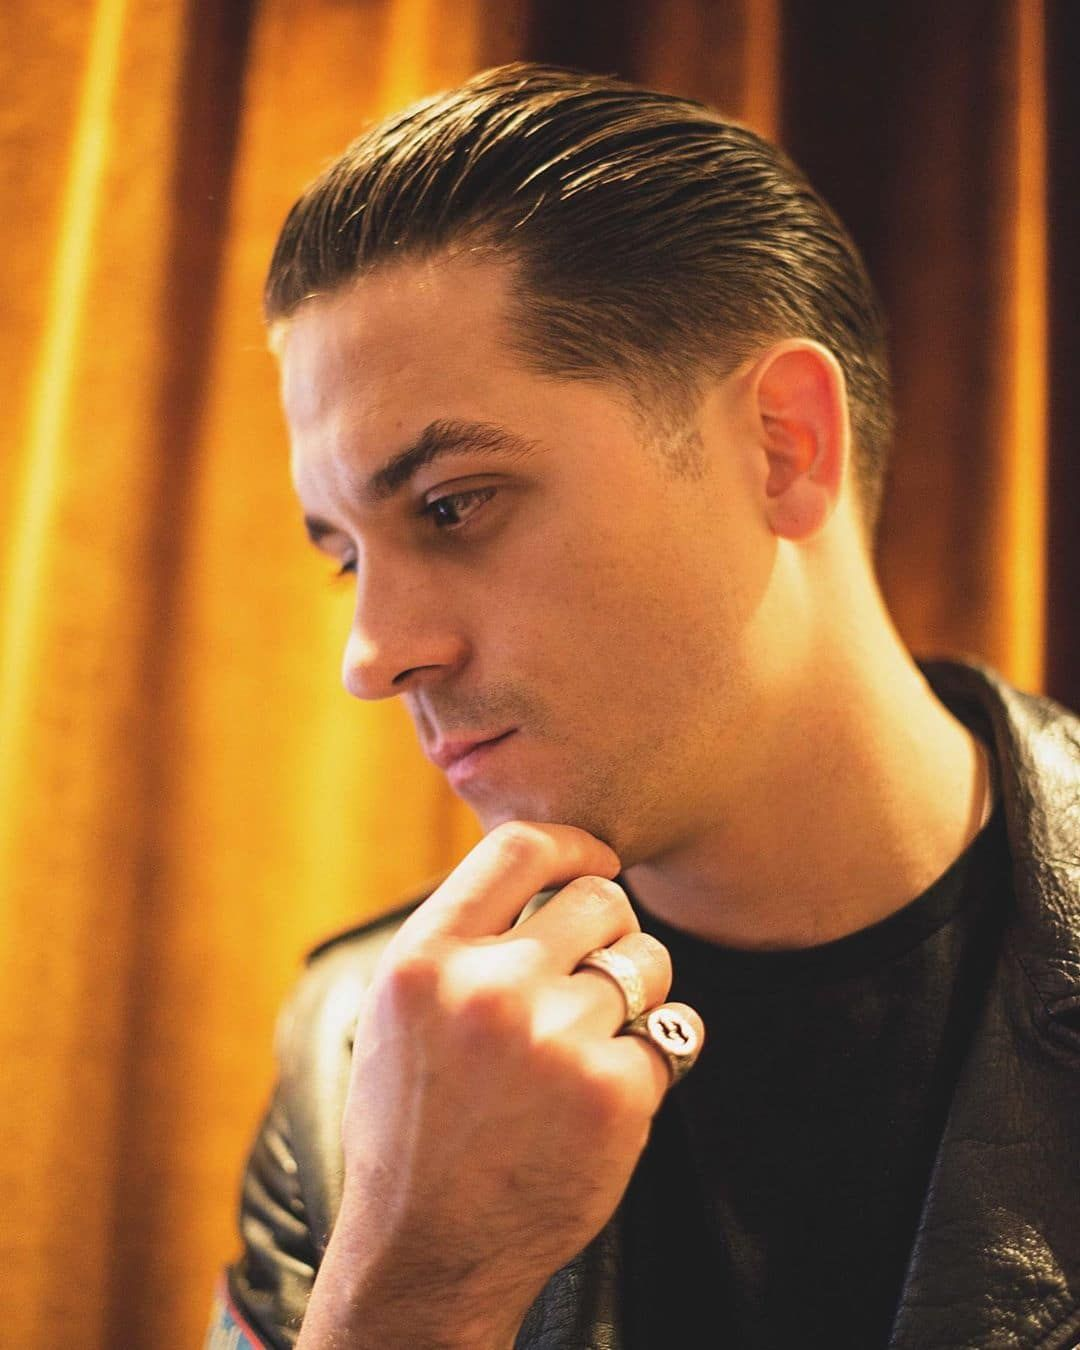 G Eazy Hairstyle : hairstyle